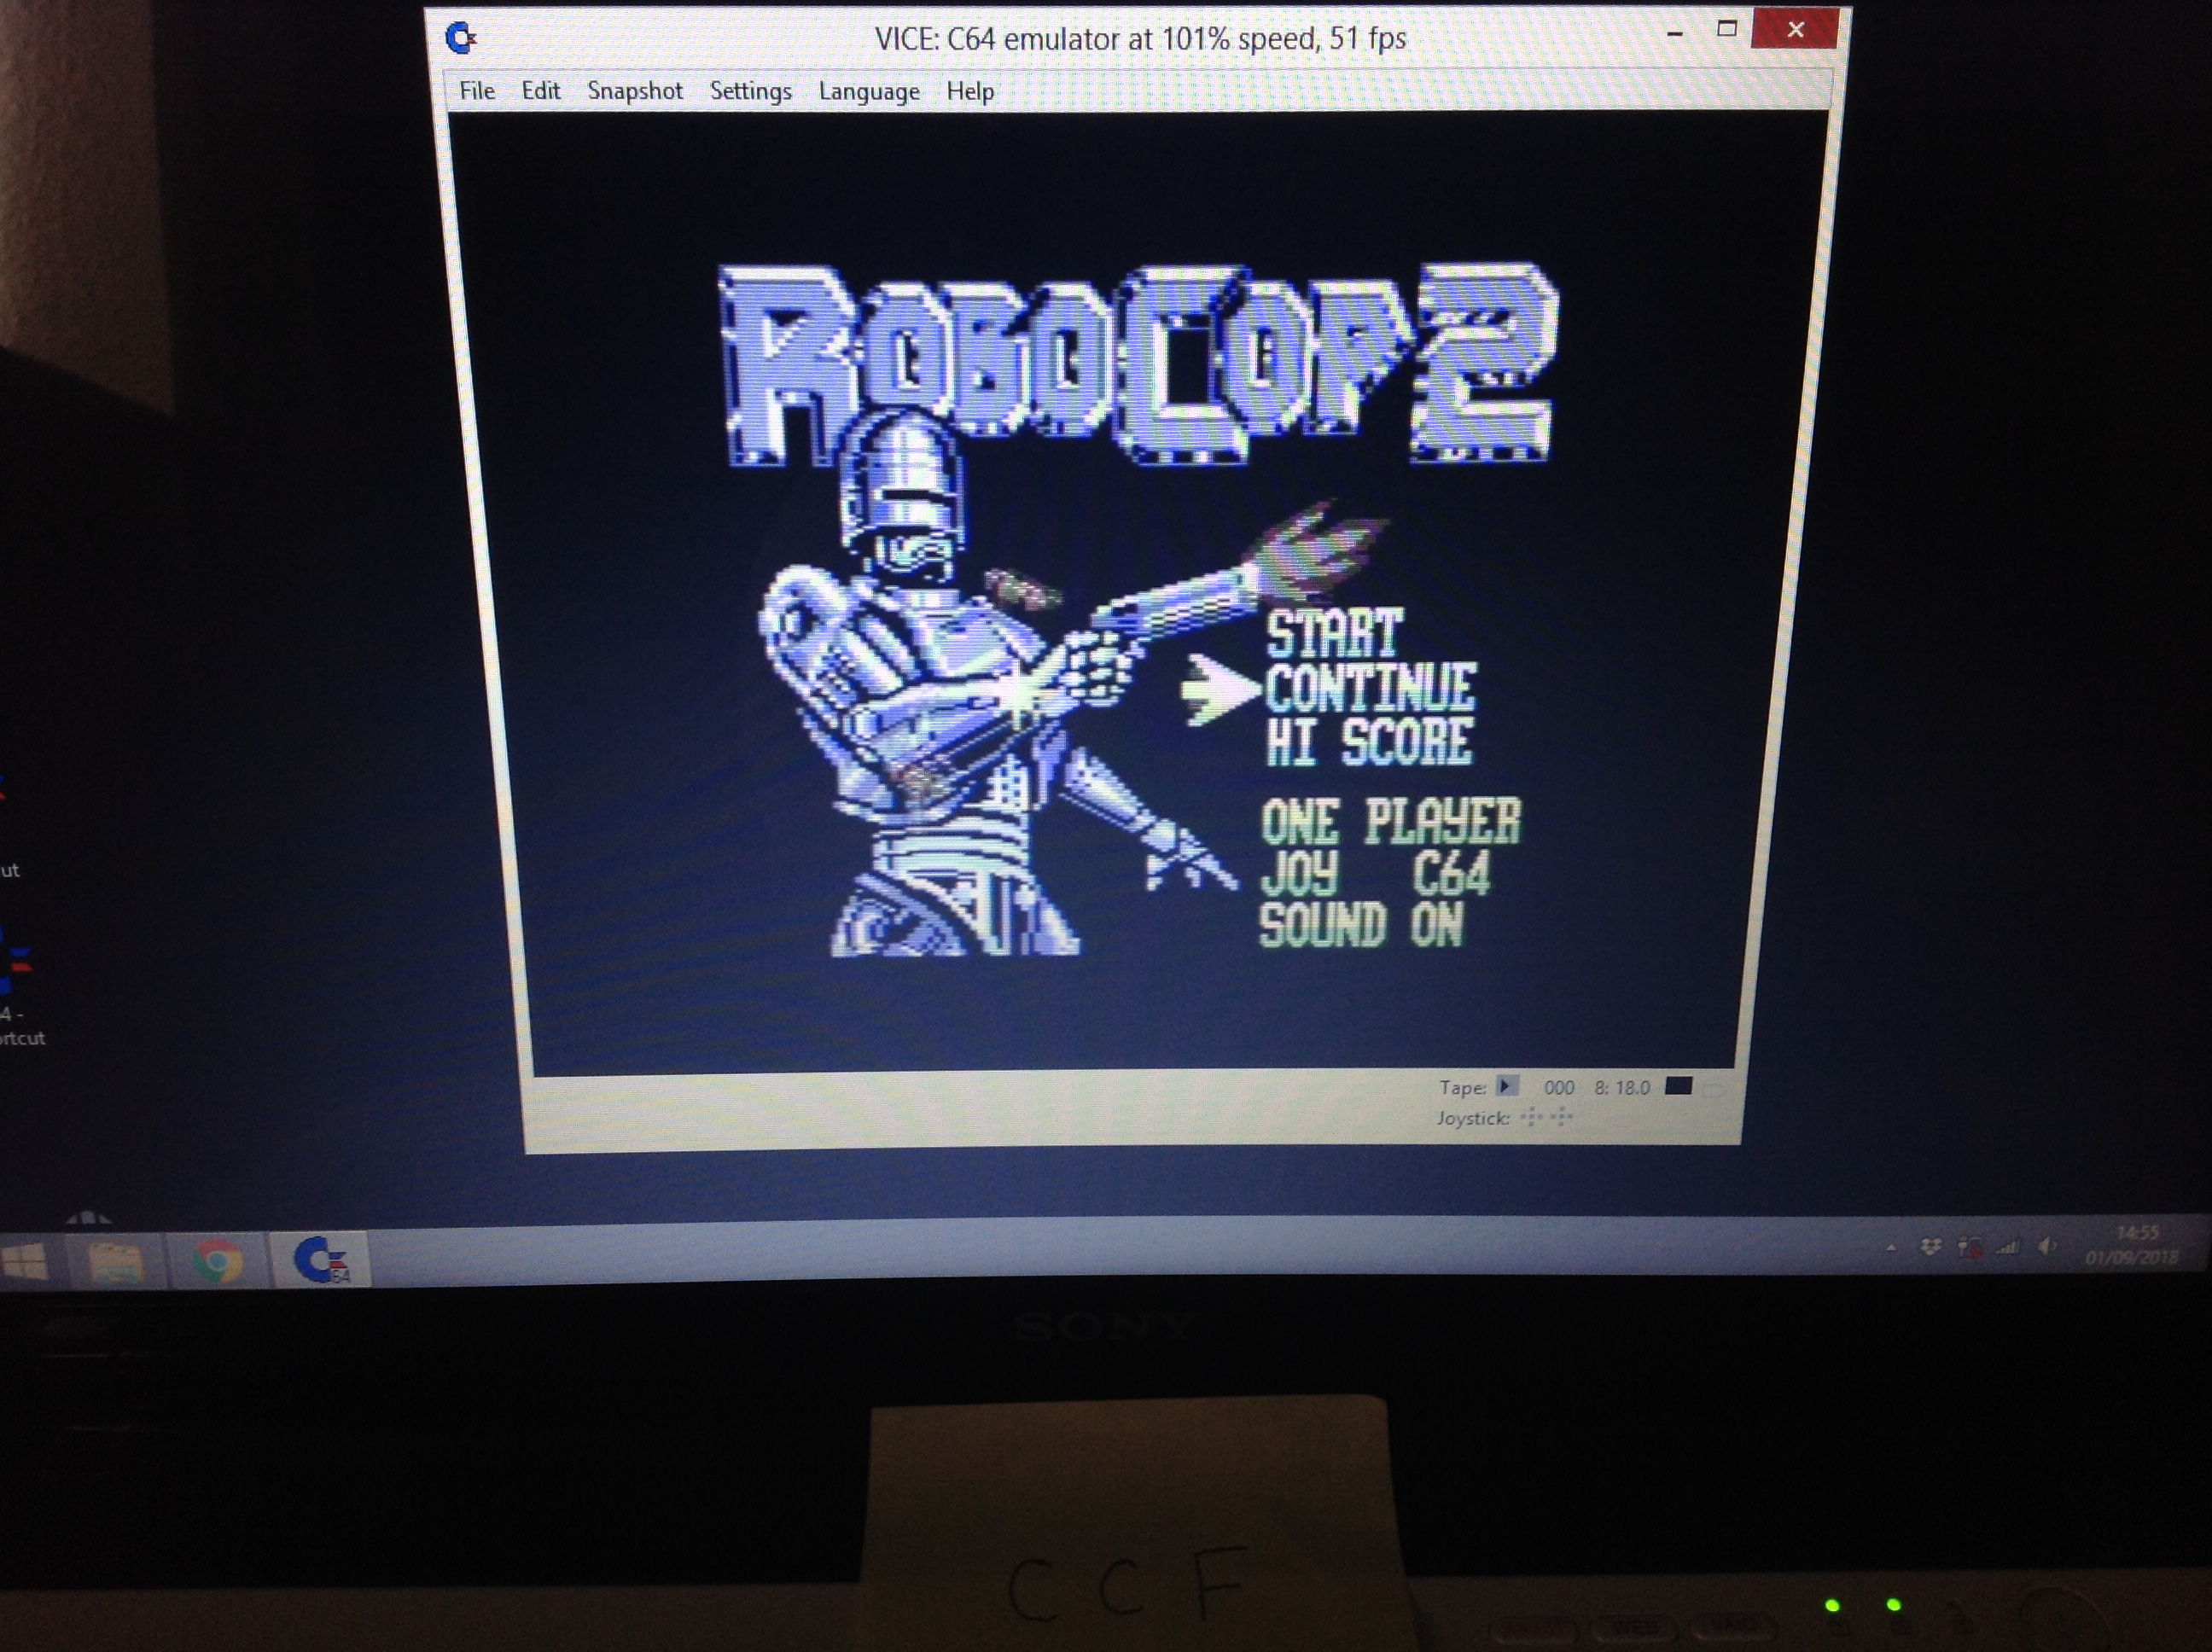 CoCoForest: Robocop 2 (Commodore 64 Emulated) 489,500 points on 2018-09-01 08:56:41